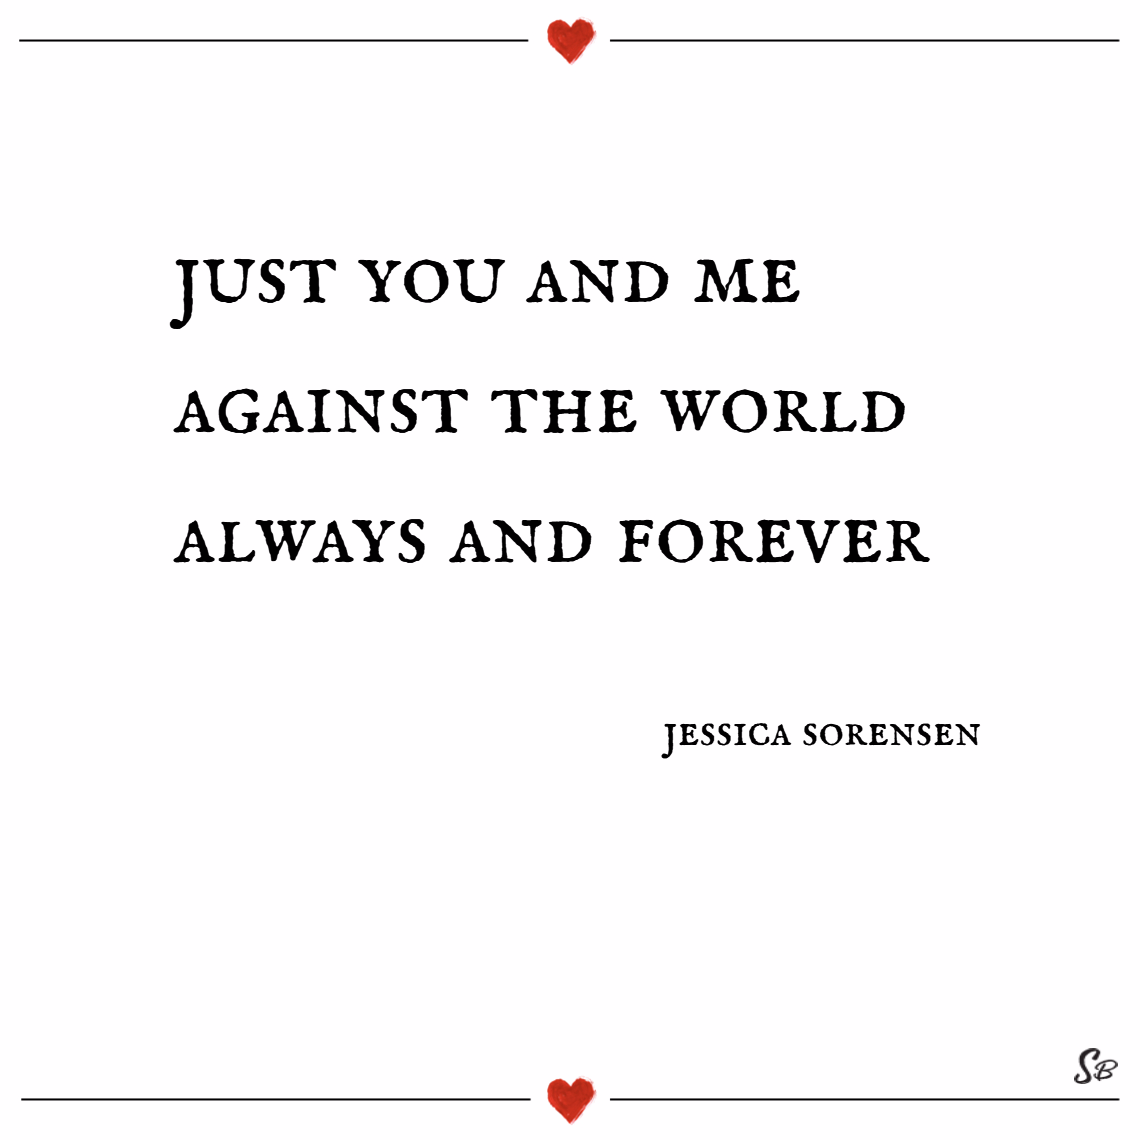 Just you and me against the world. always and forever. – jessica sorensen